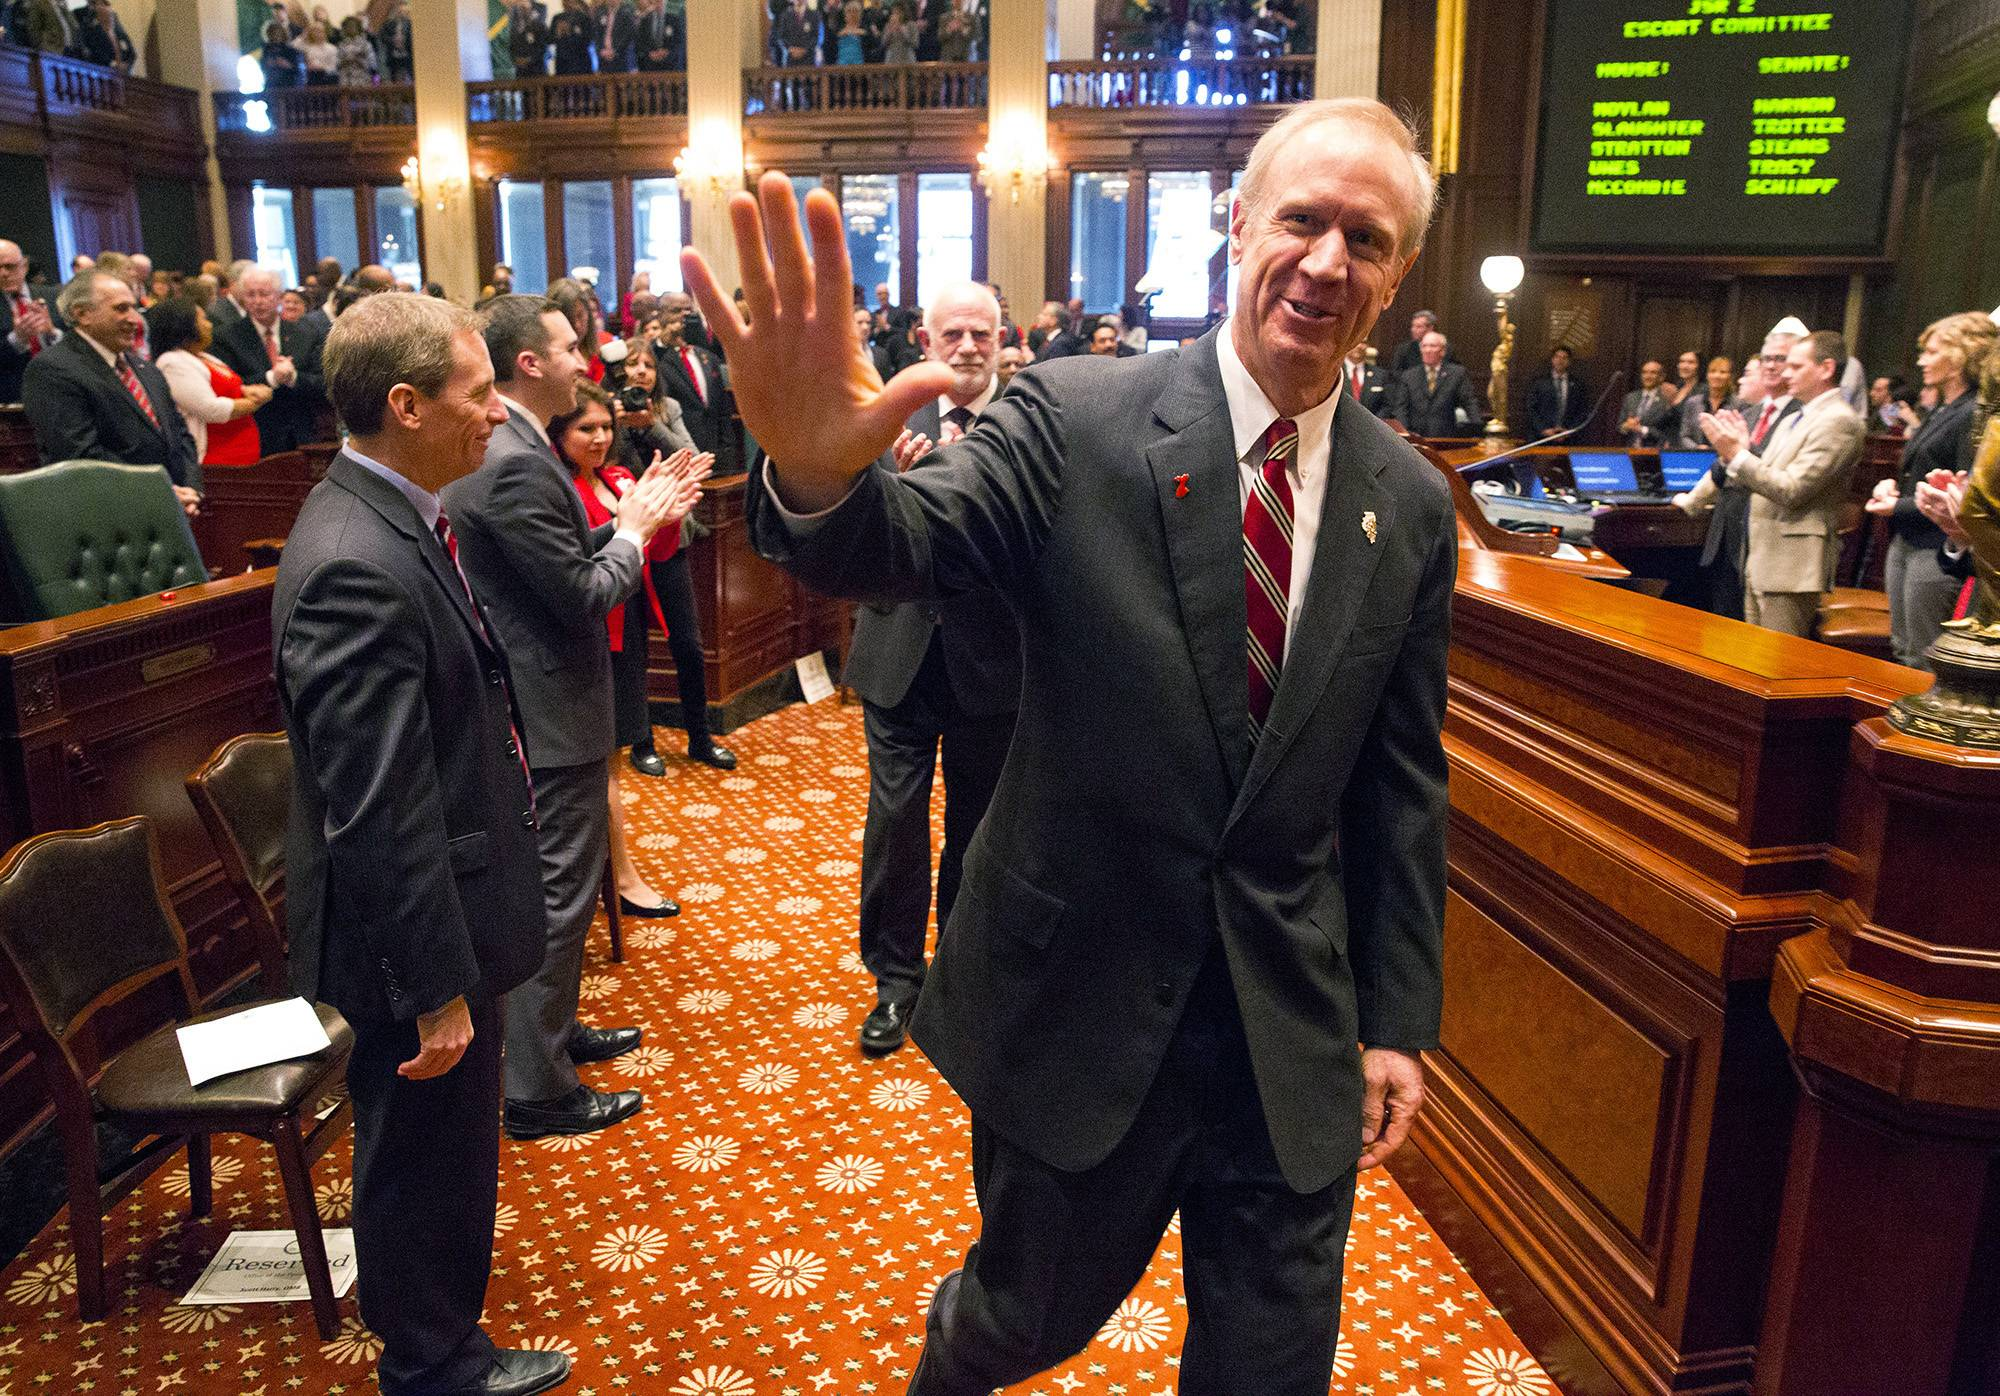 Illinois Gov. Bruce Rauner approaches the dais to deliver his budget address in February. The state has gone without a full-year budget since July 2015.